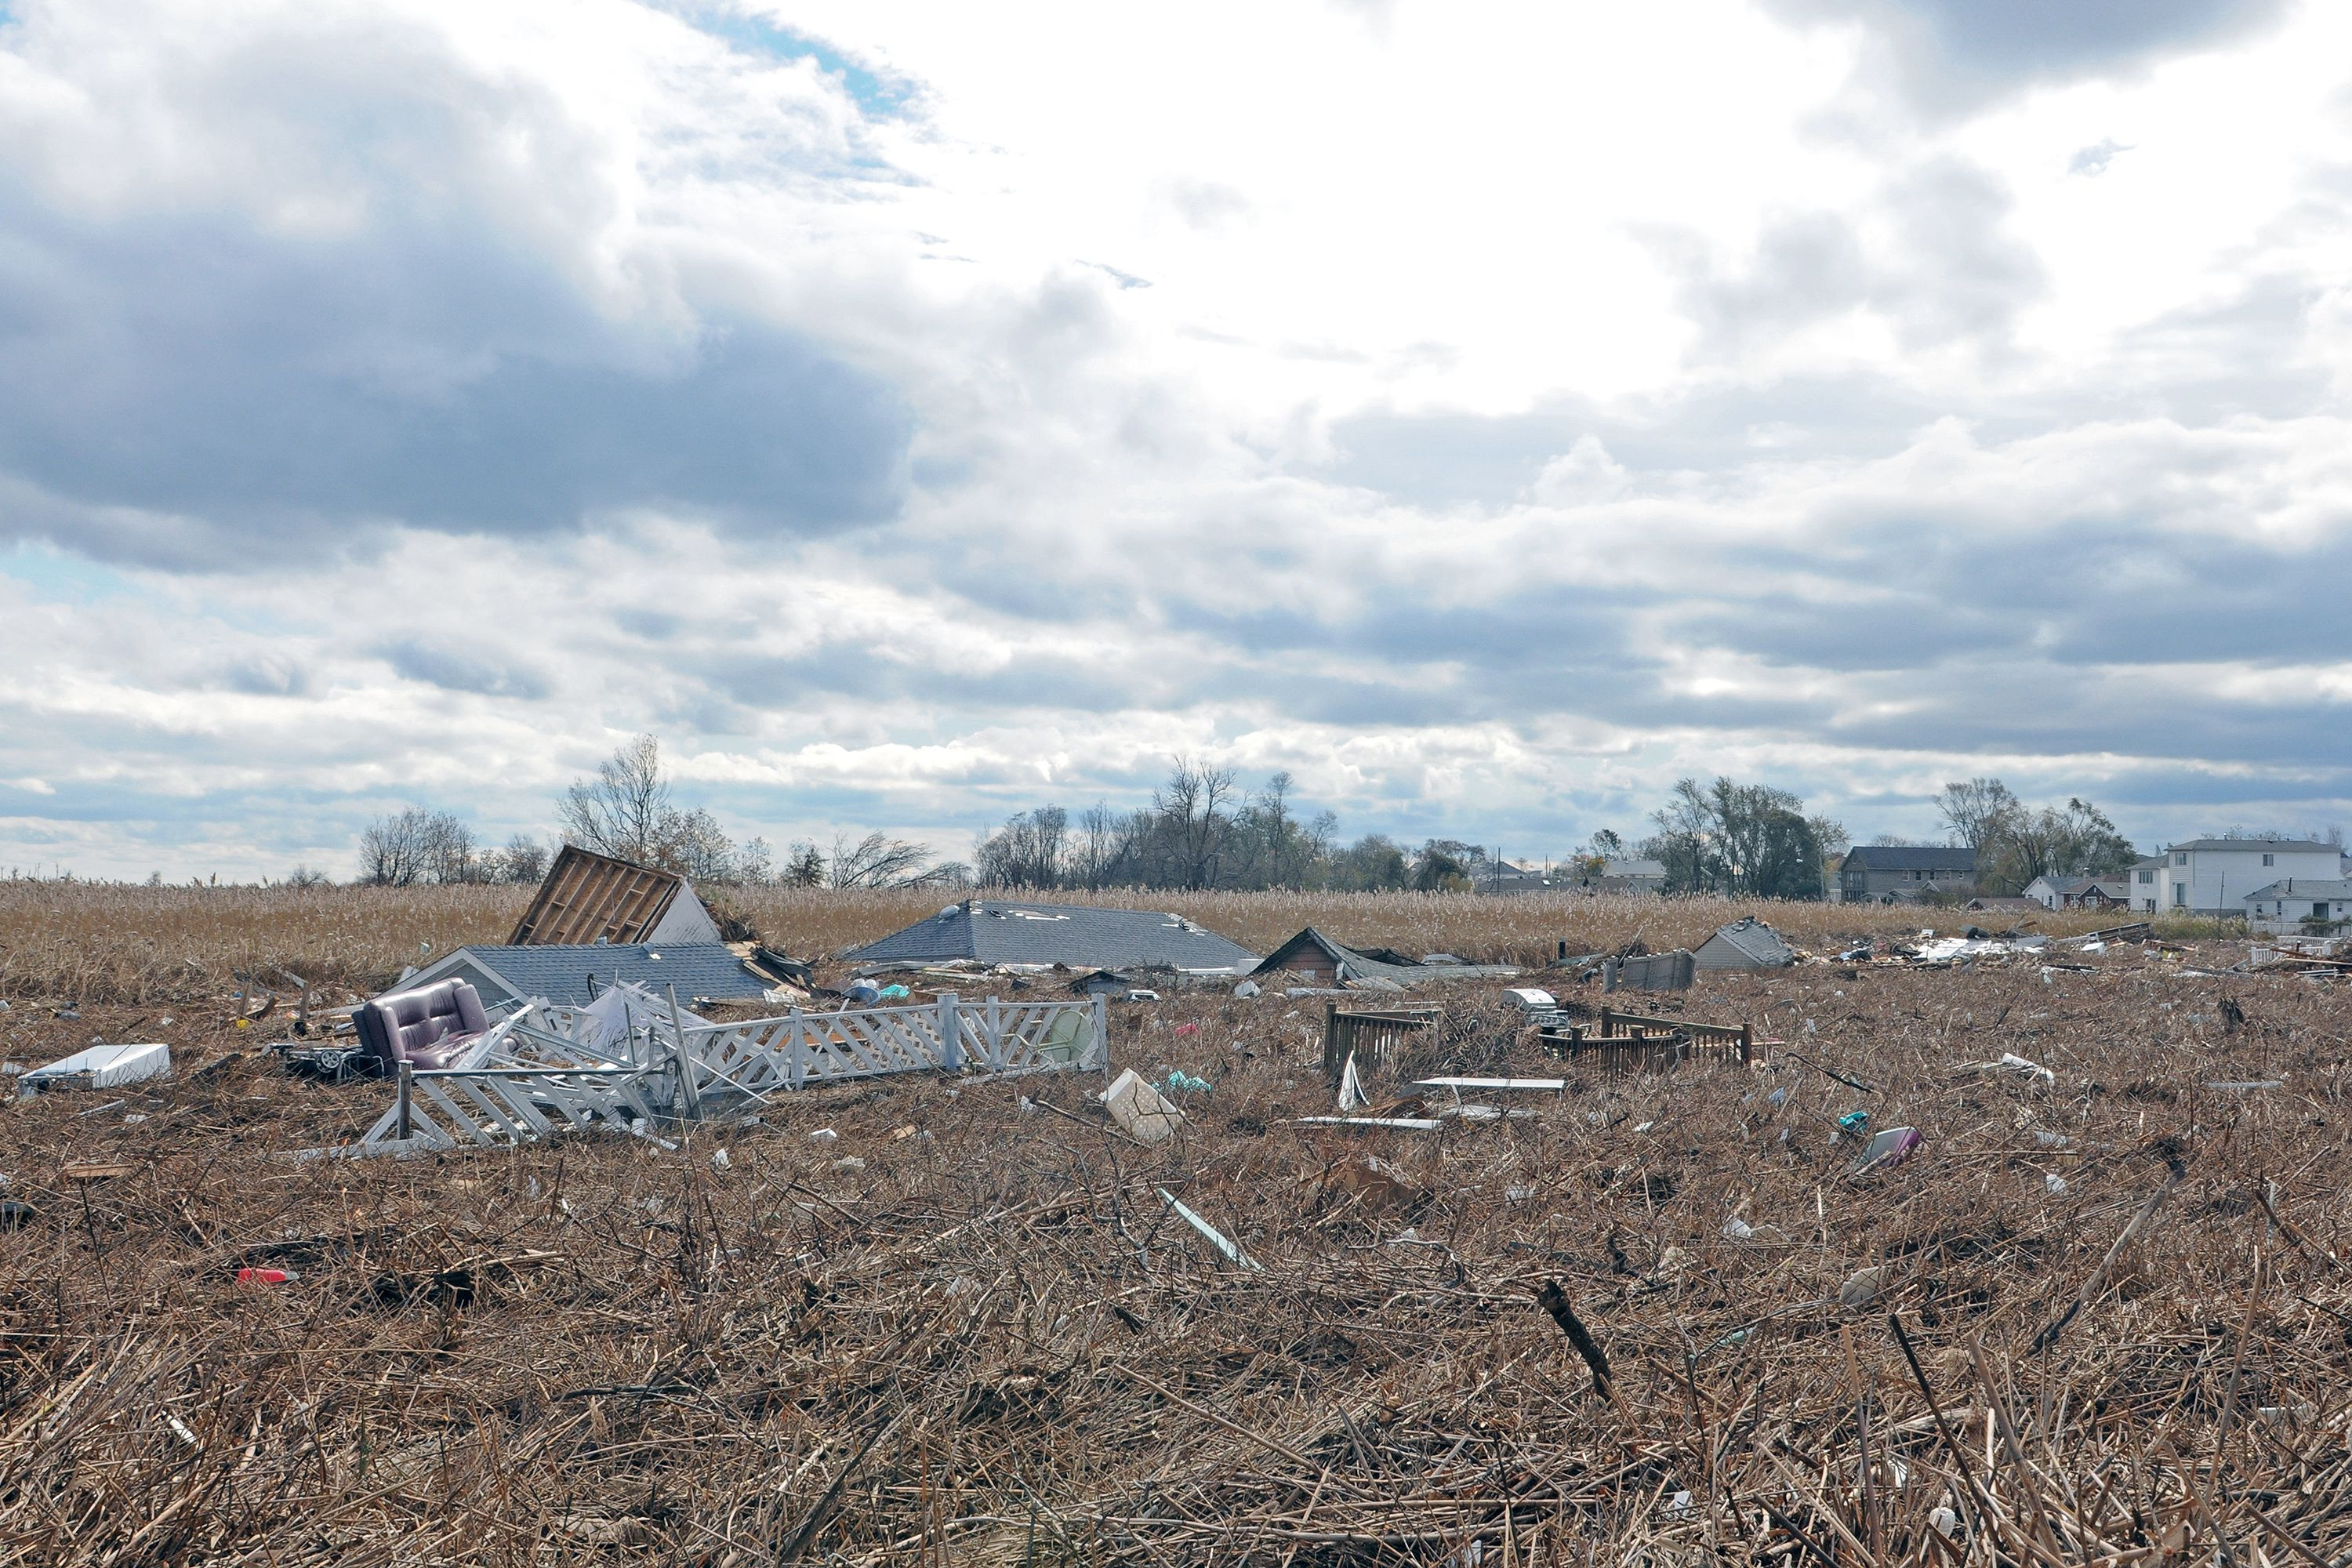 Homes were washed into a marsh near Fox Beach Avenue on Staten Island after Superstorm Sandy, Oct. 31, 2012.